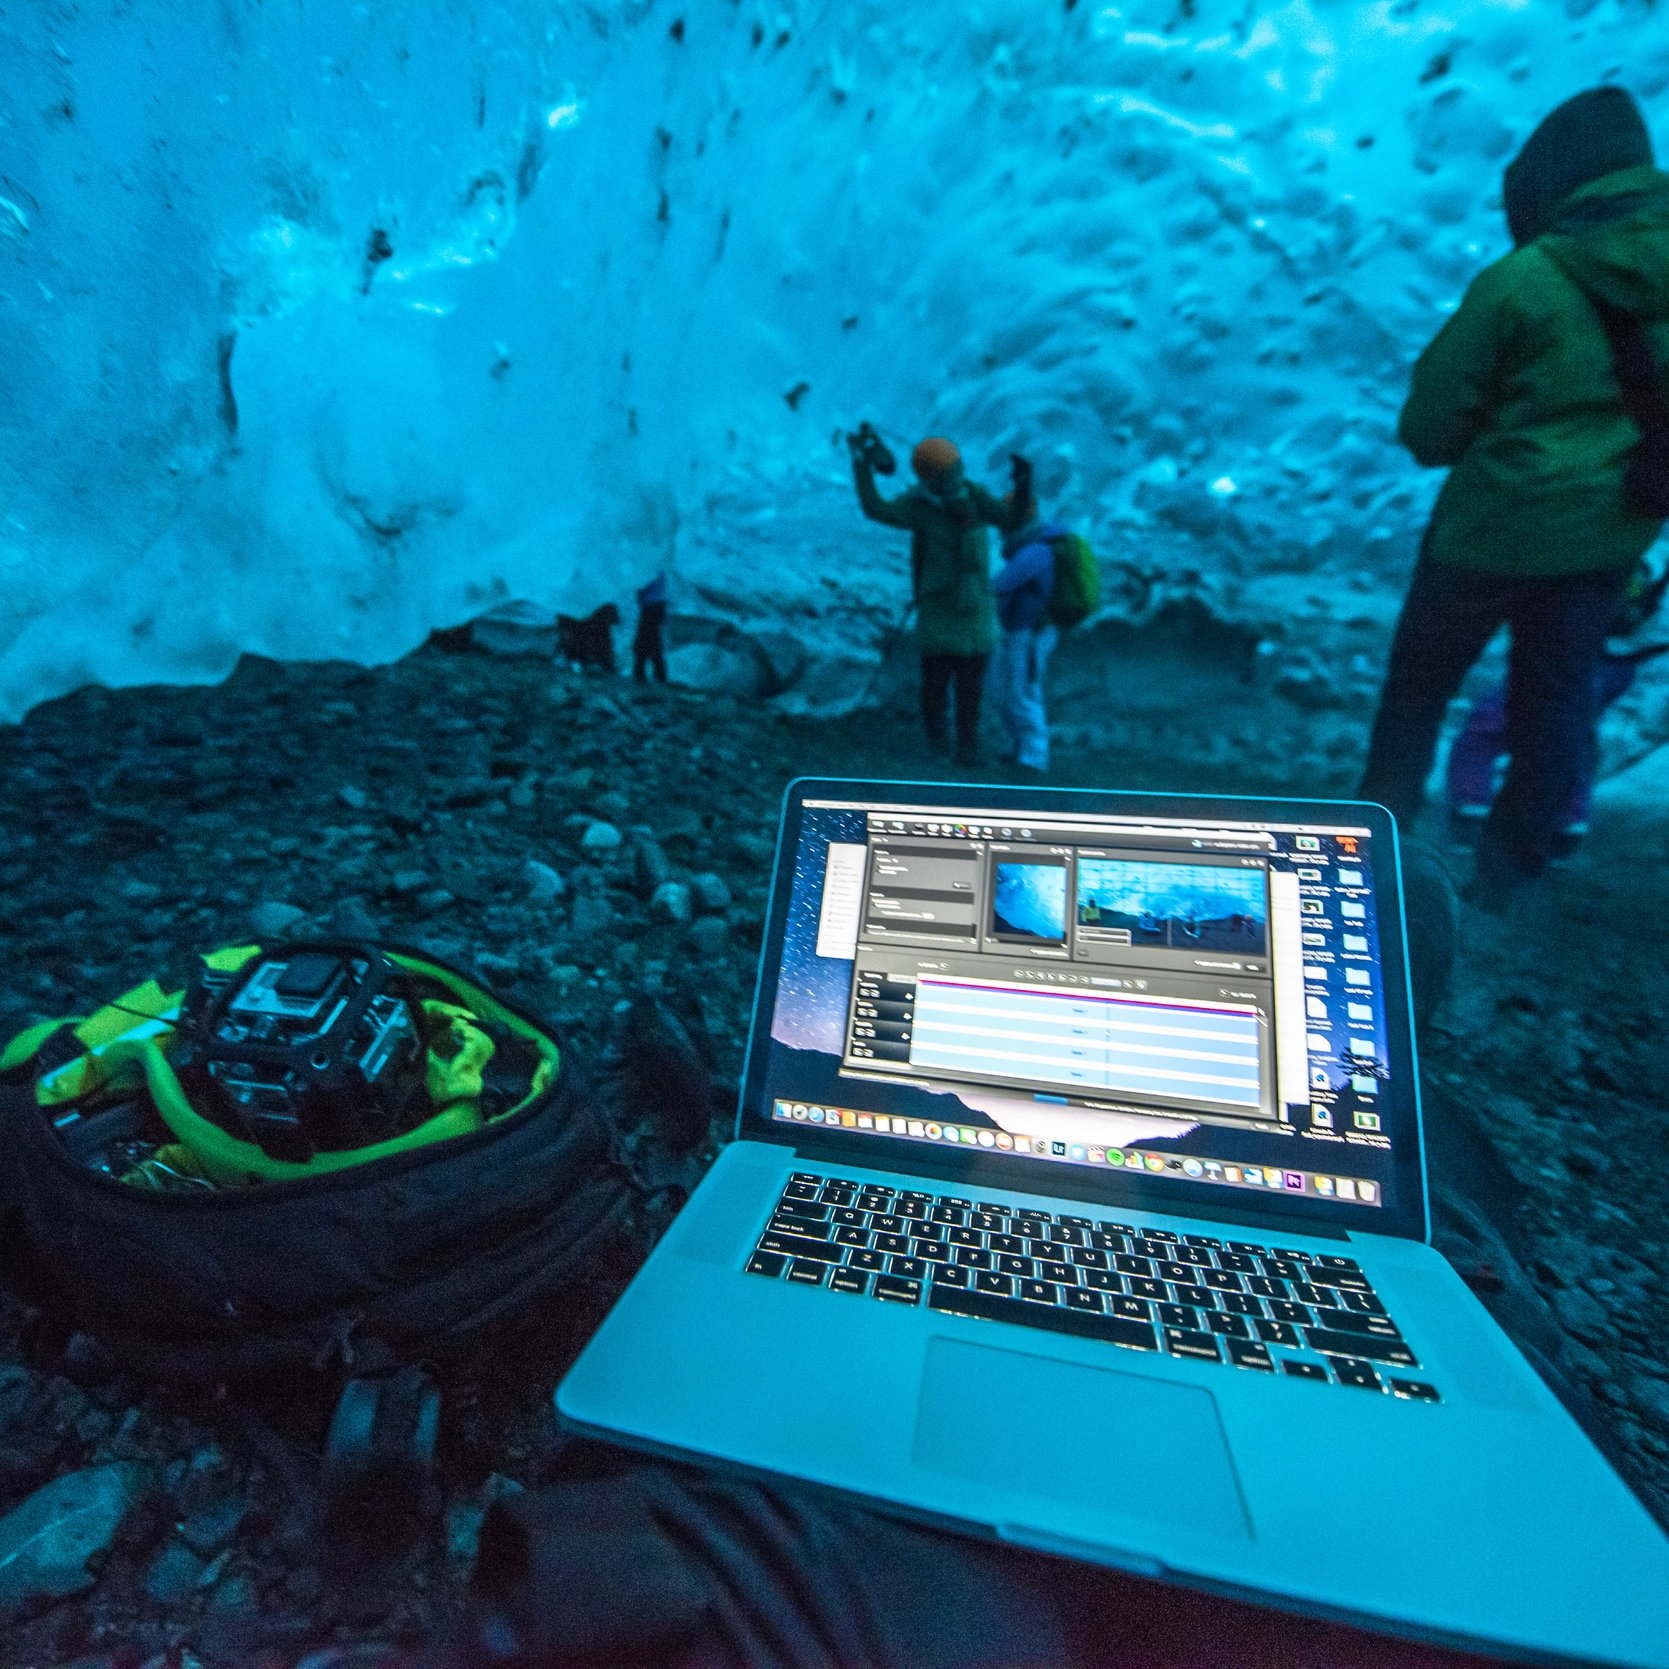 """A MacBook Pro """"stitches"""" video files inside of a glacier in Iceland (Photo by Steve Johnson)."""